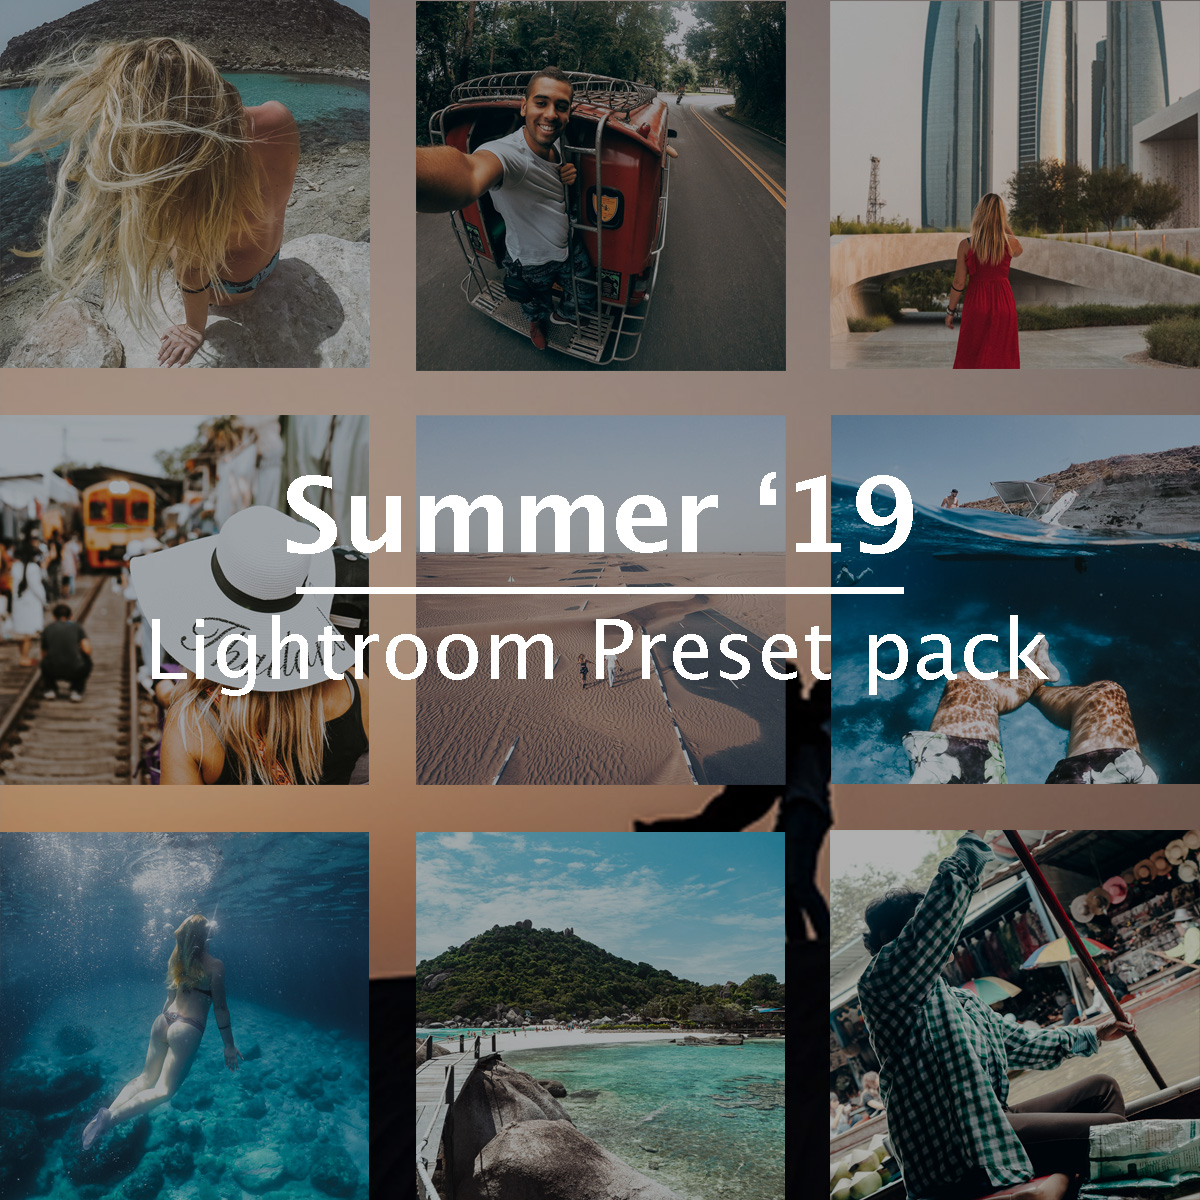 Summer '19 (Presets Lightroom)